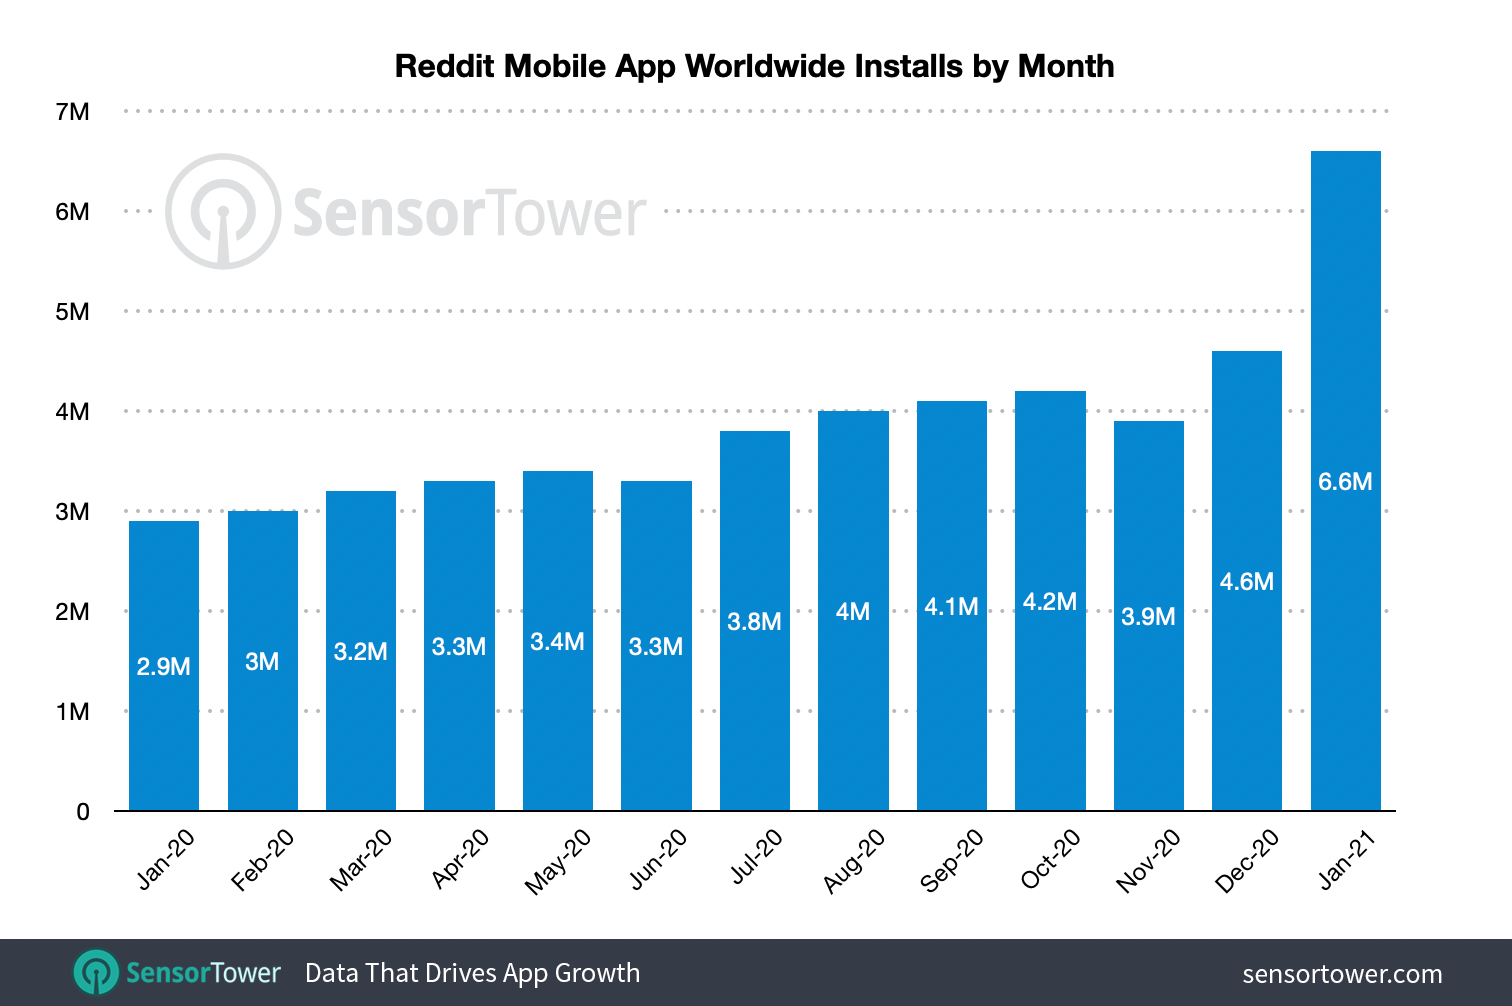 Reddit's worldwide installs reached 6.6 million in January 2021